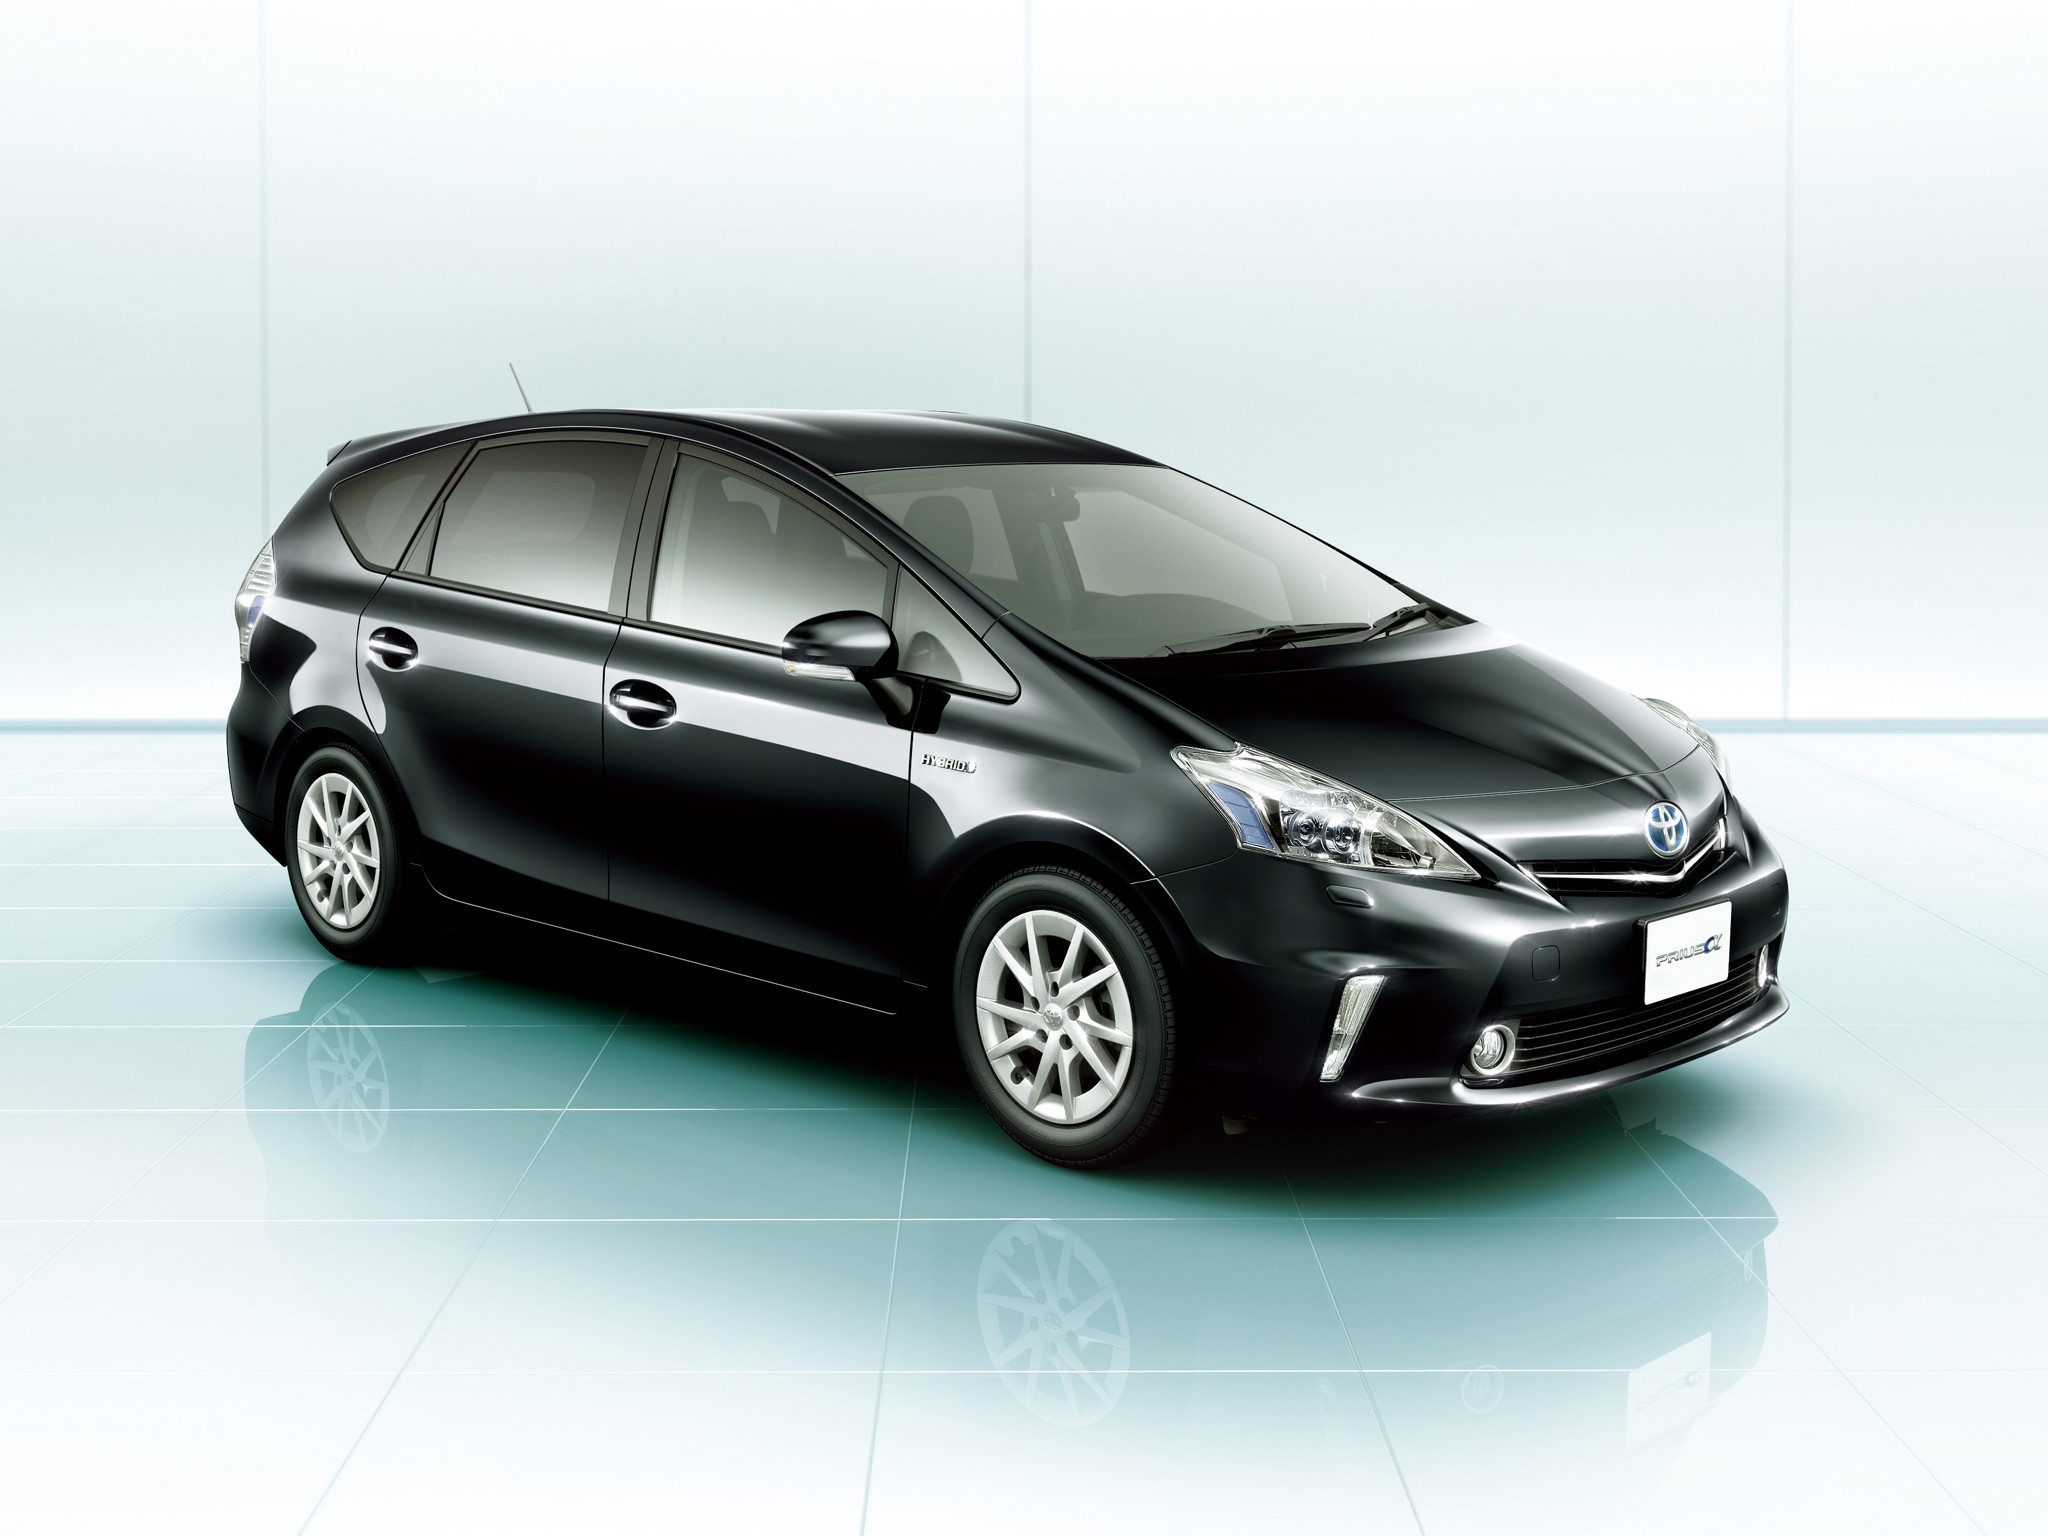 toyota prius v prius specs 2011 2012 2013 2014 2015. Black Bedroom Furniture Sets. Home Design Ideas